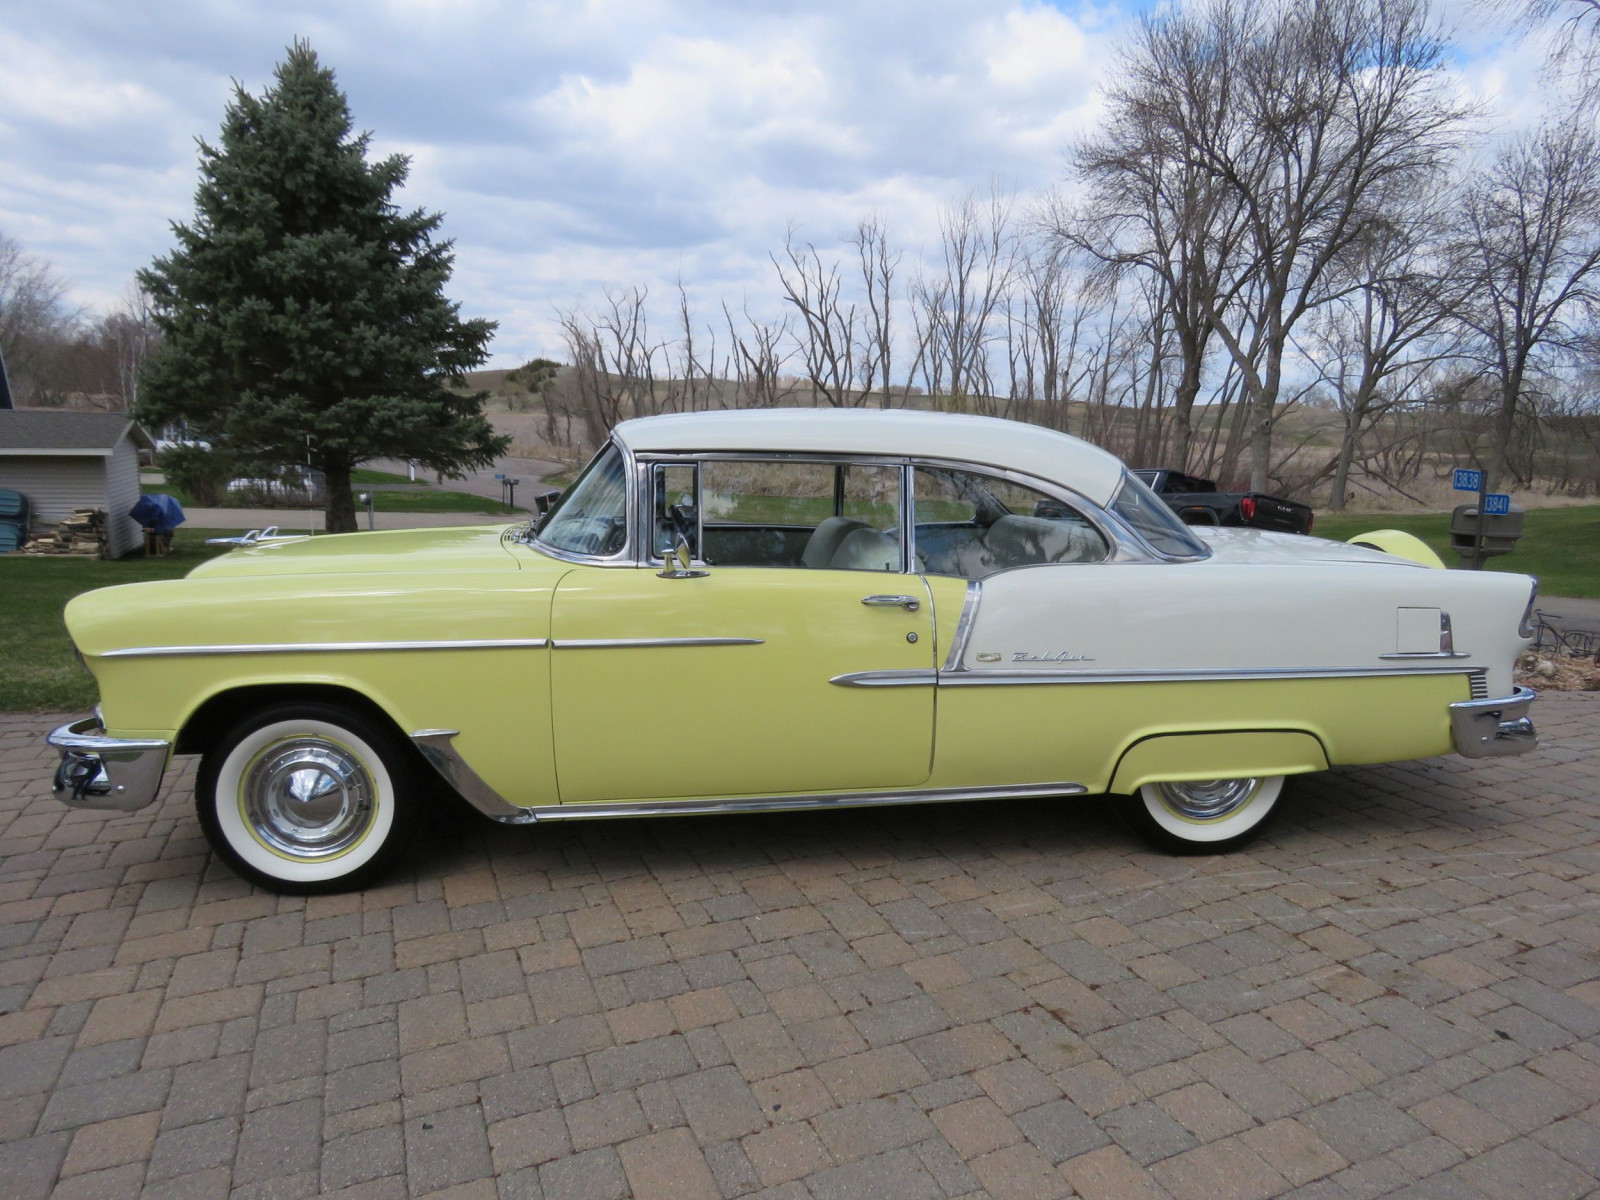 Beautiful 1955 Chevrolet Bel Air 2dr HT - Image 4